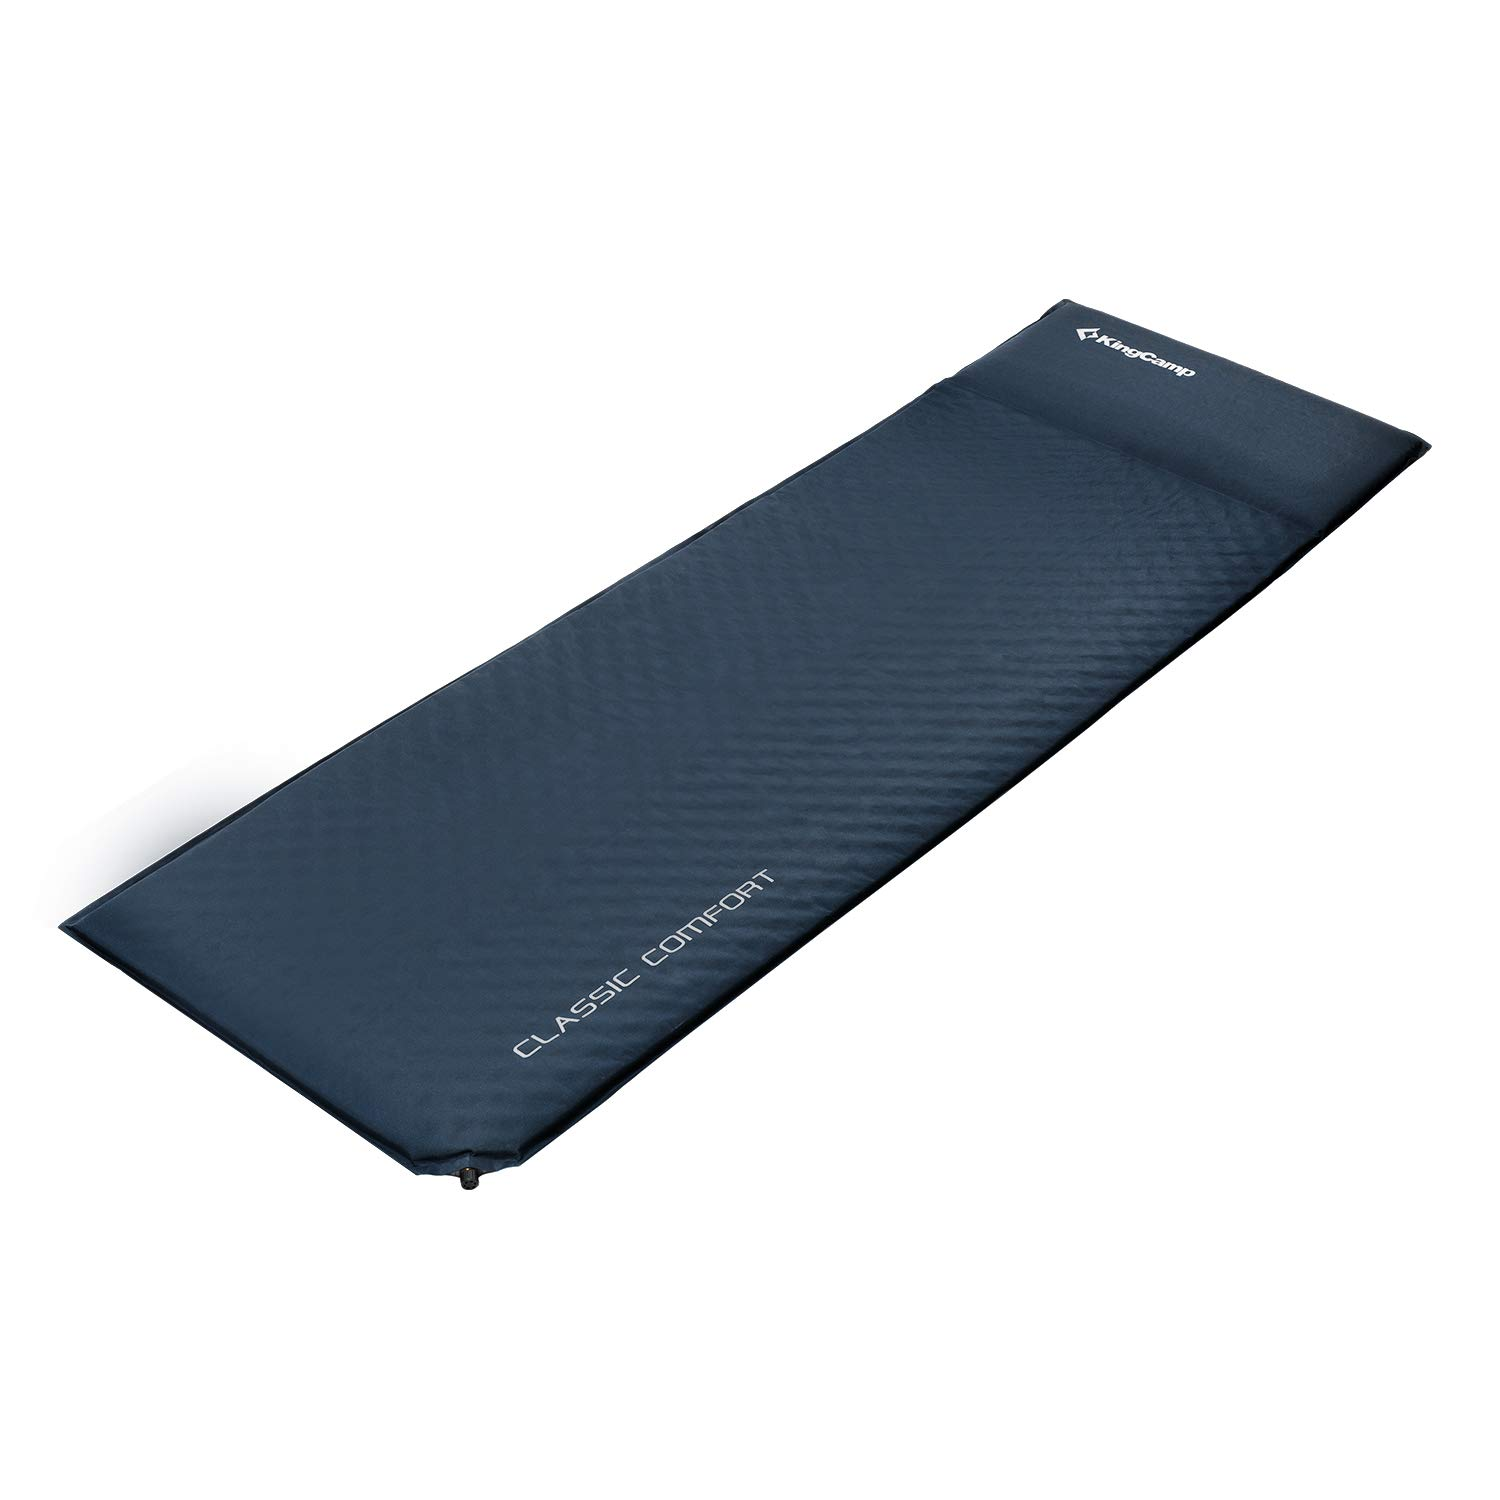 KingCamp CLASSIC Light Comfort Self-Inflating Camping Sleeping Pad with Built-in Pillows